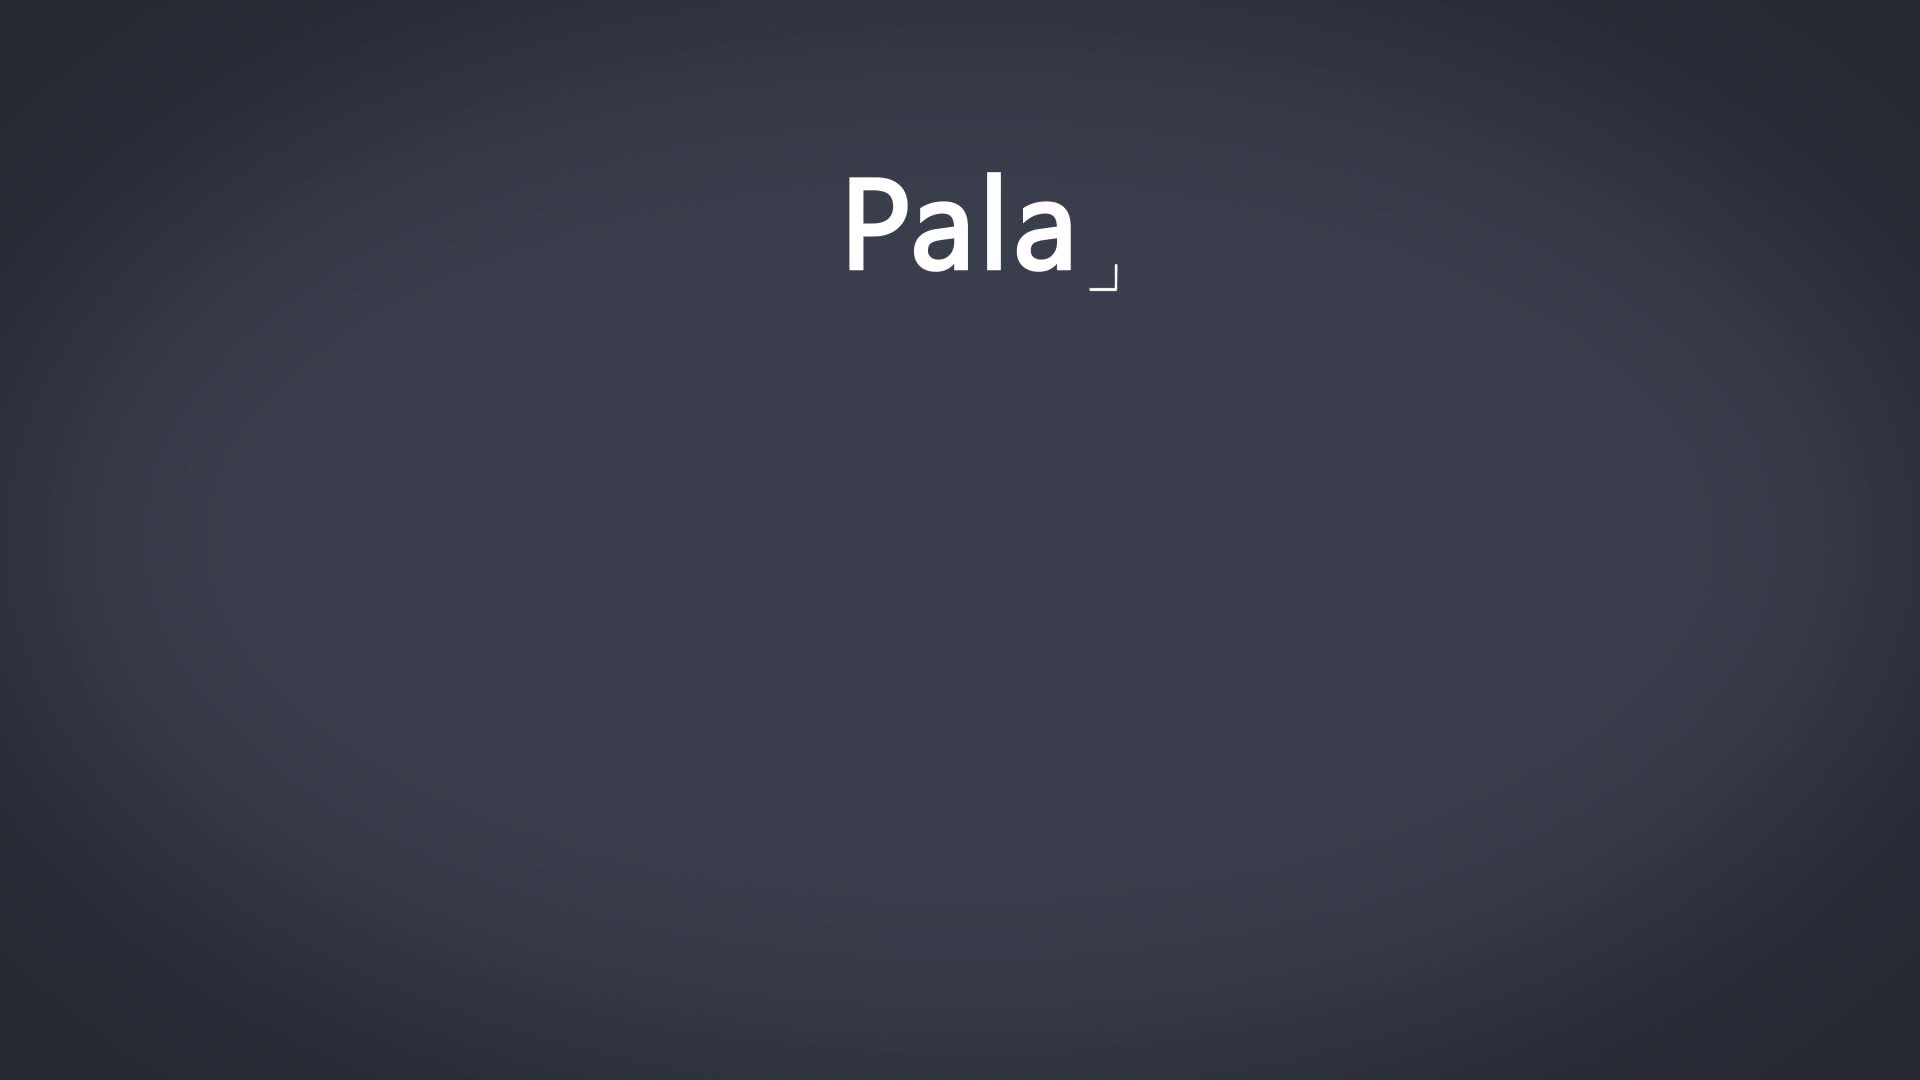 Tutoriala: Pala